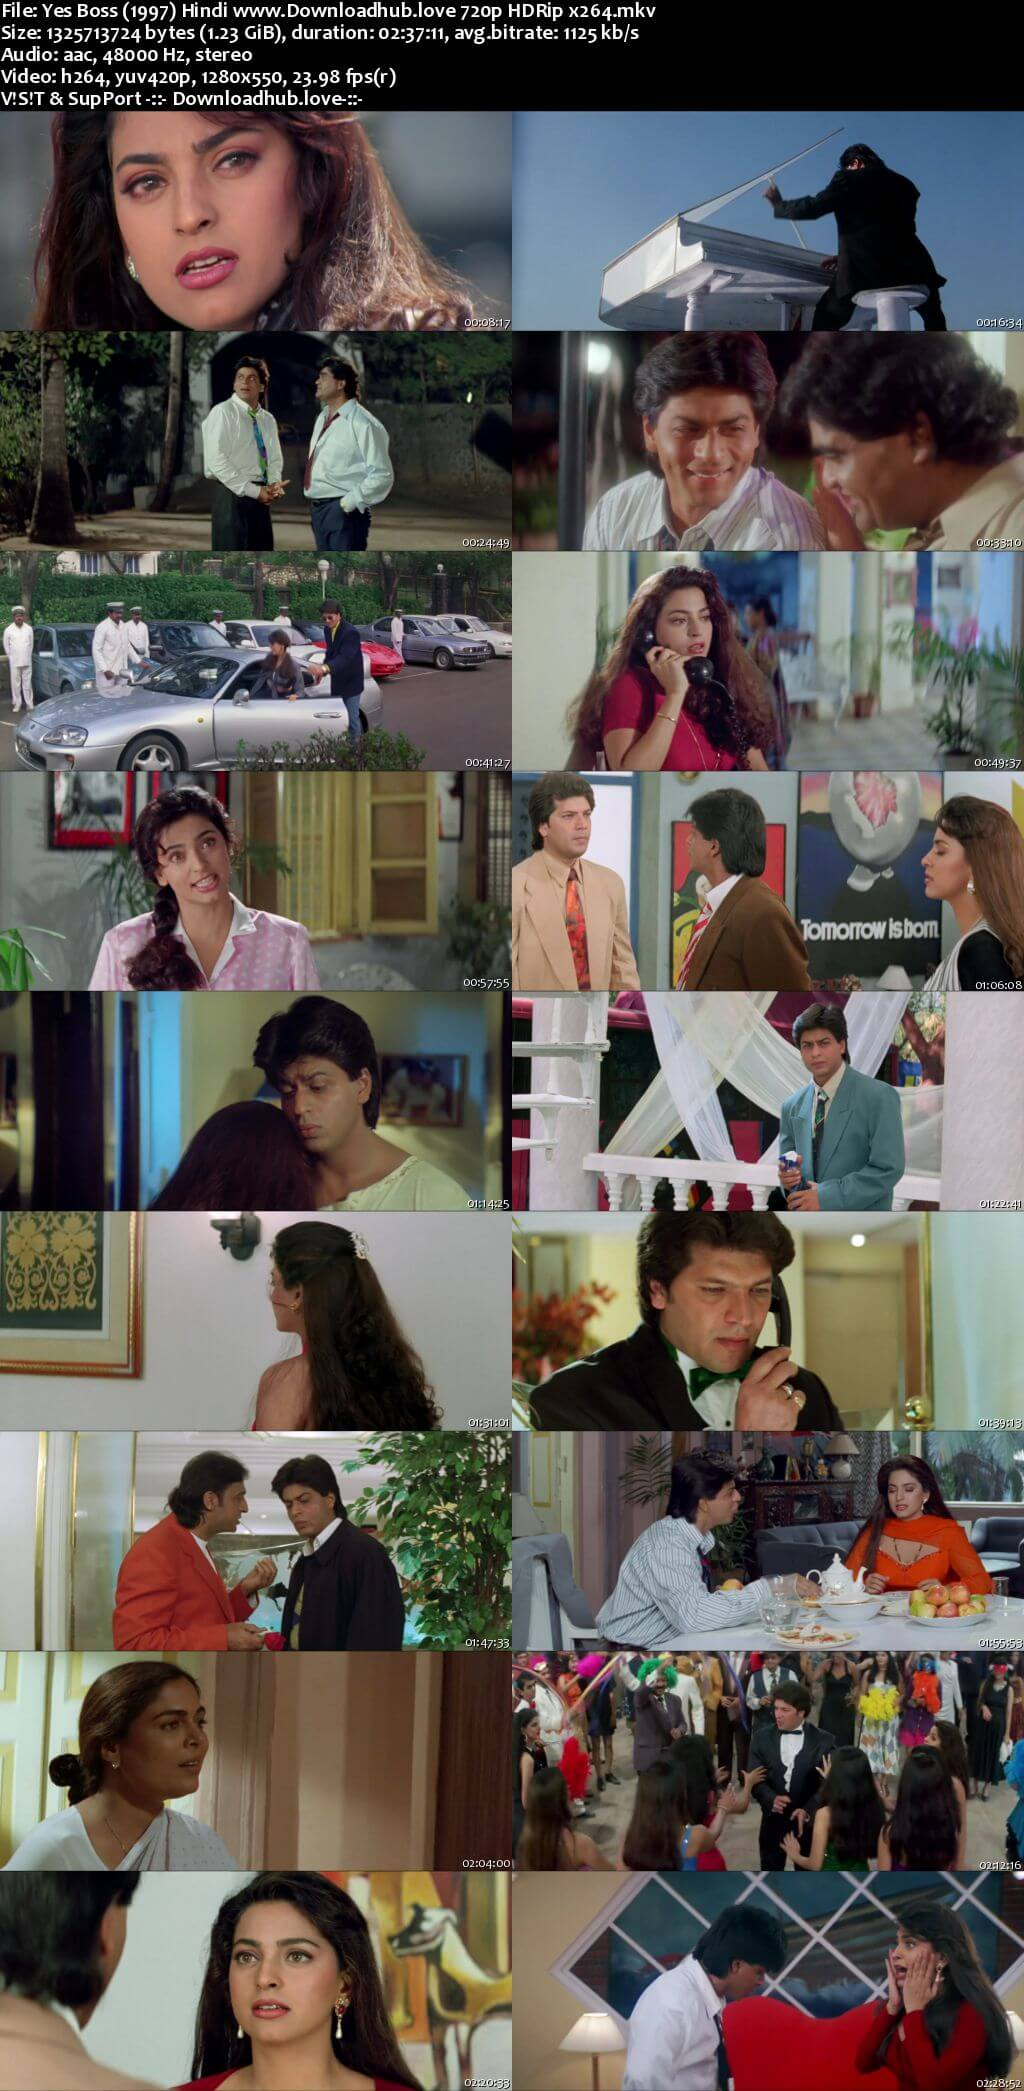 Yes Boss 1997 Hindi 720p HDRip x264